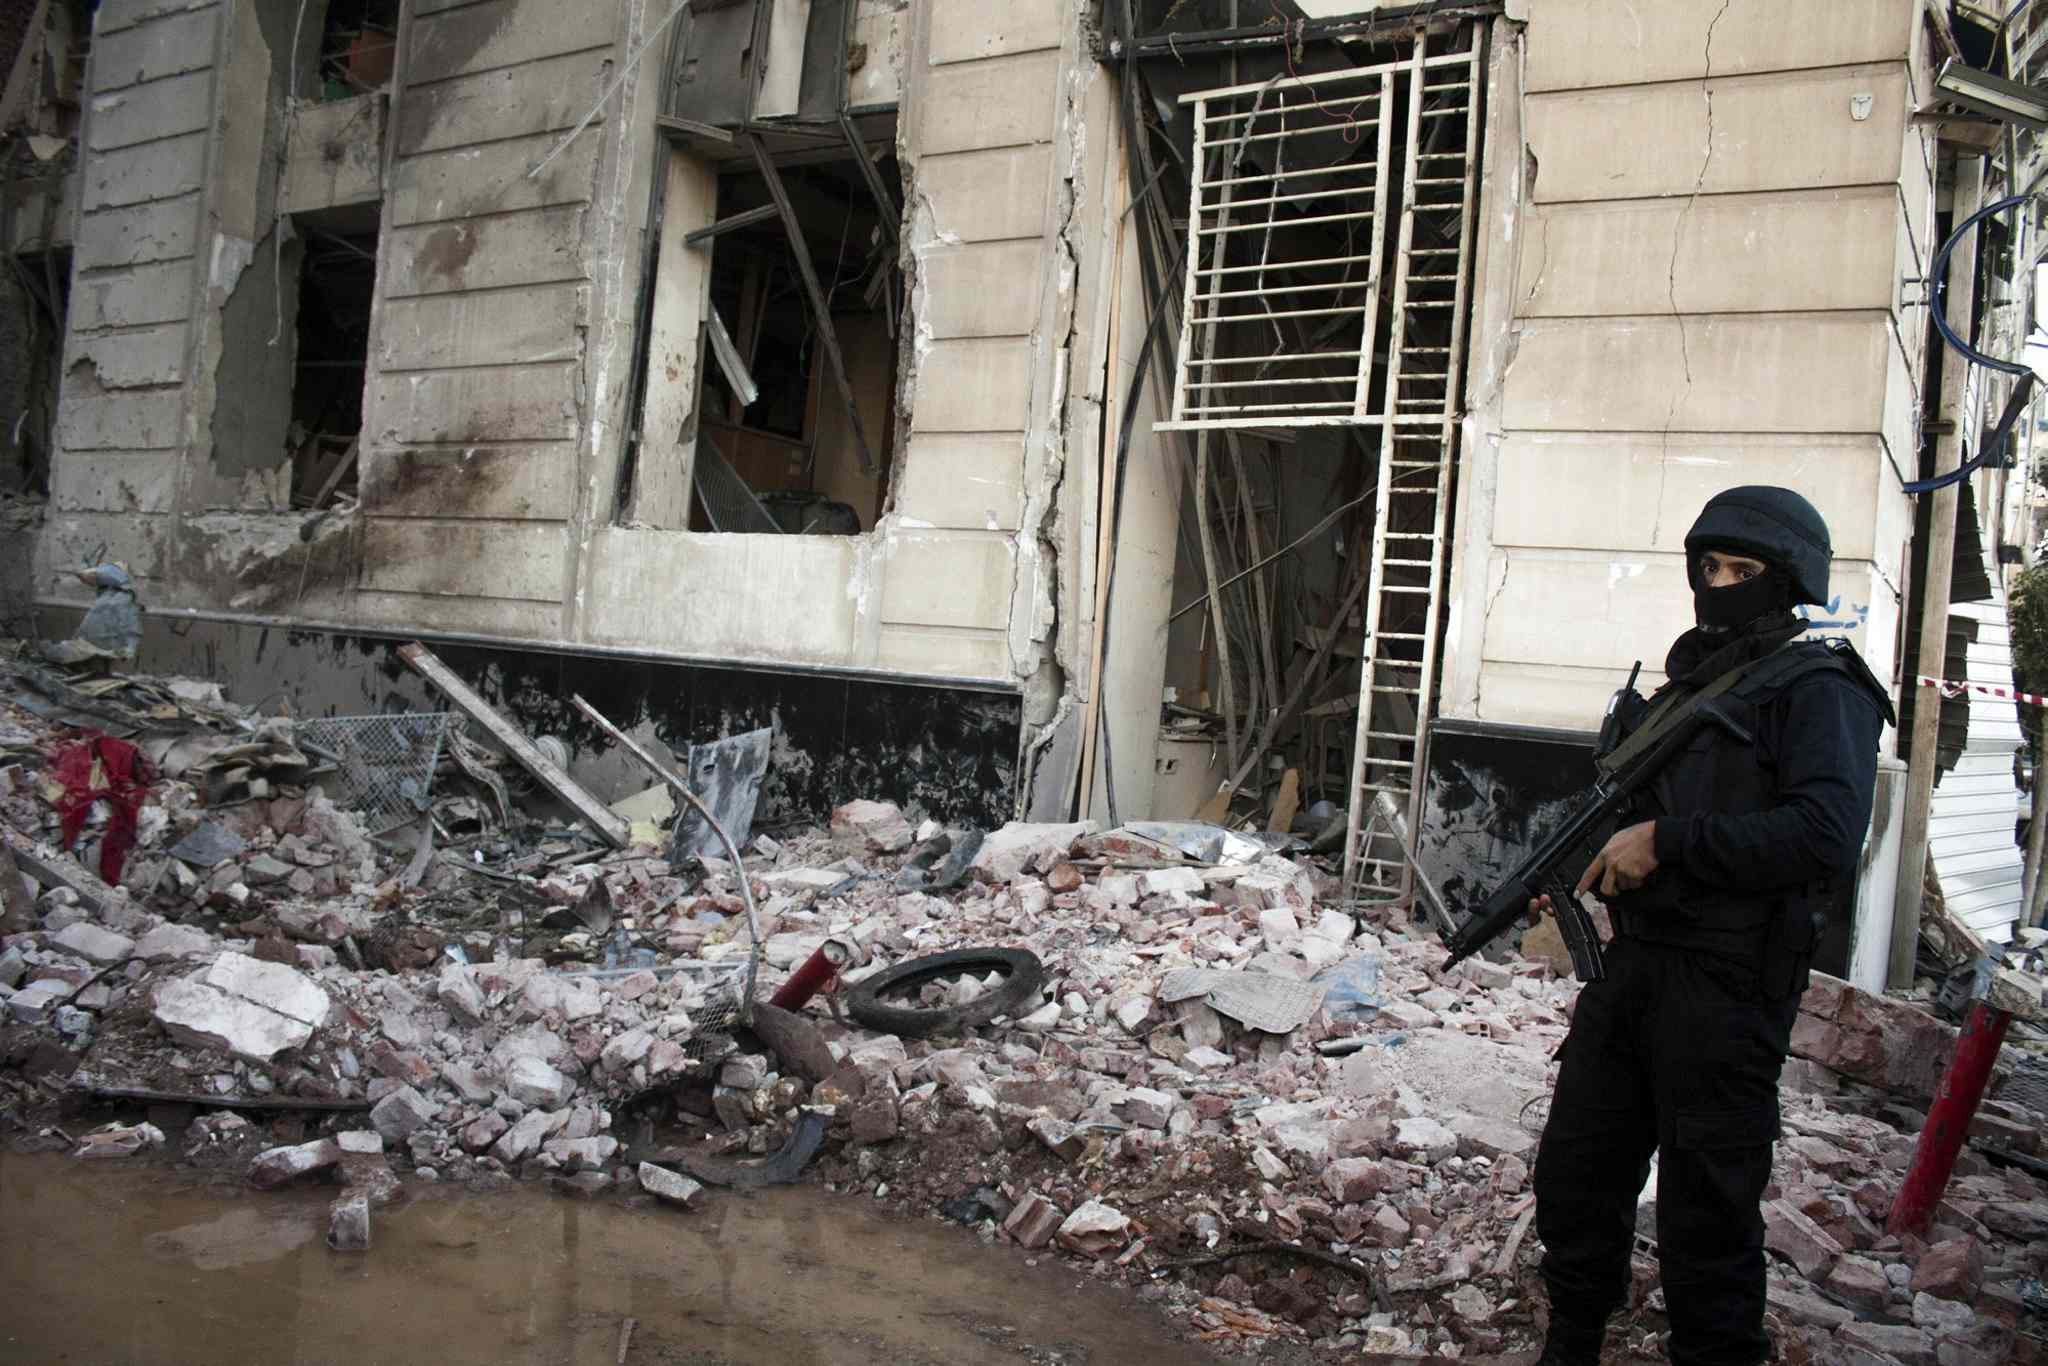 An officer guards the scene of a fatal car bombing outside a security headquarters building in Mansoura, Egypt, on Tuesday.